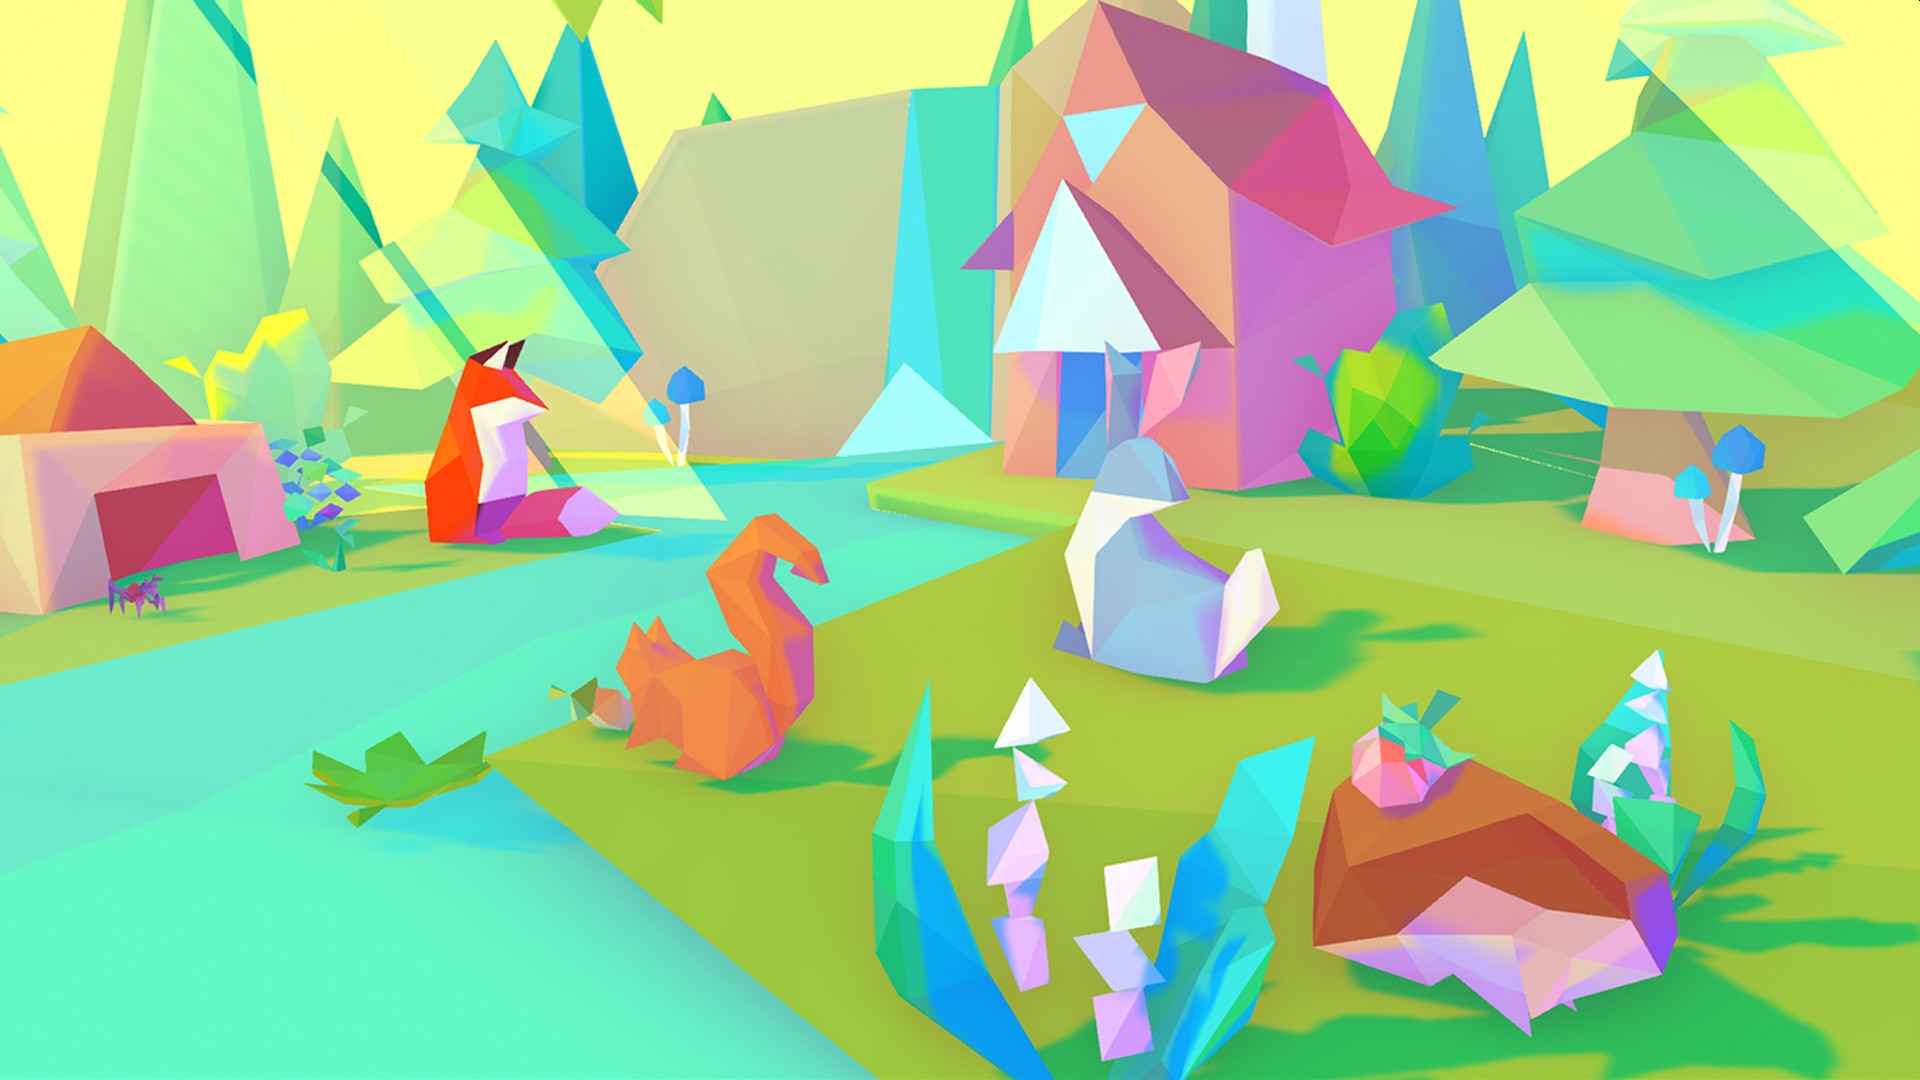 MythicOwl Announces A New Creative Game One Line Coloring For PC, Consoles, And Mobile